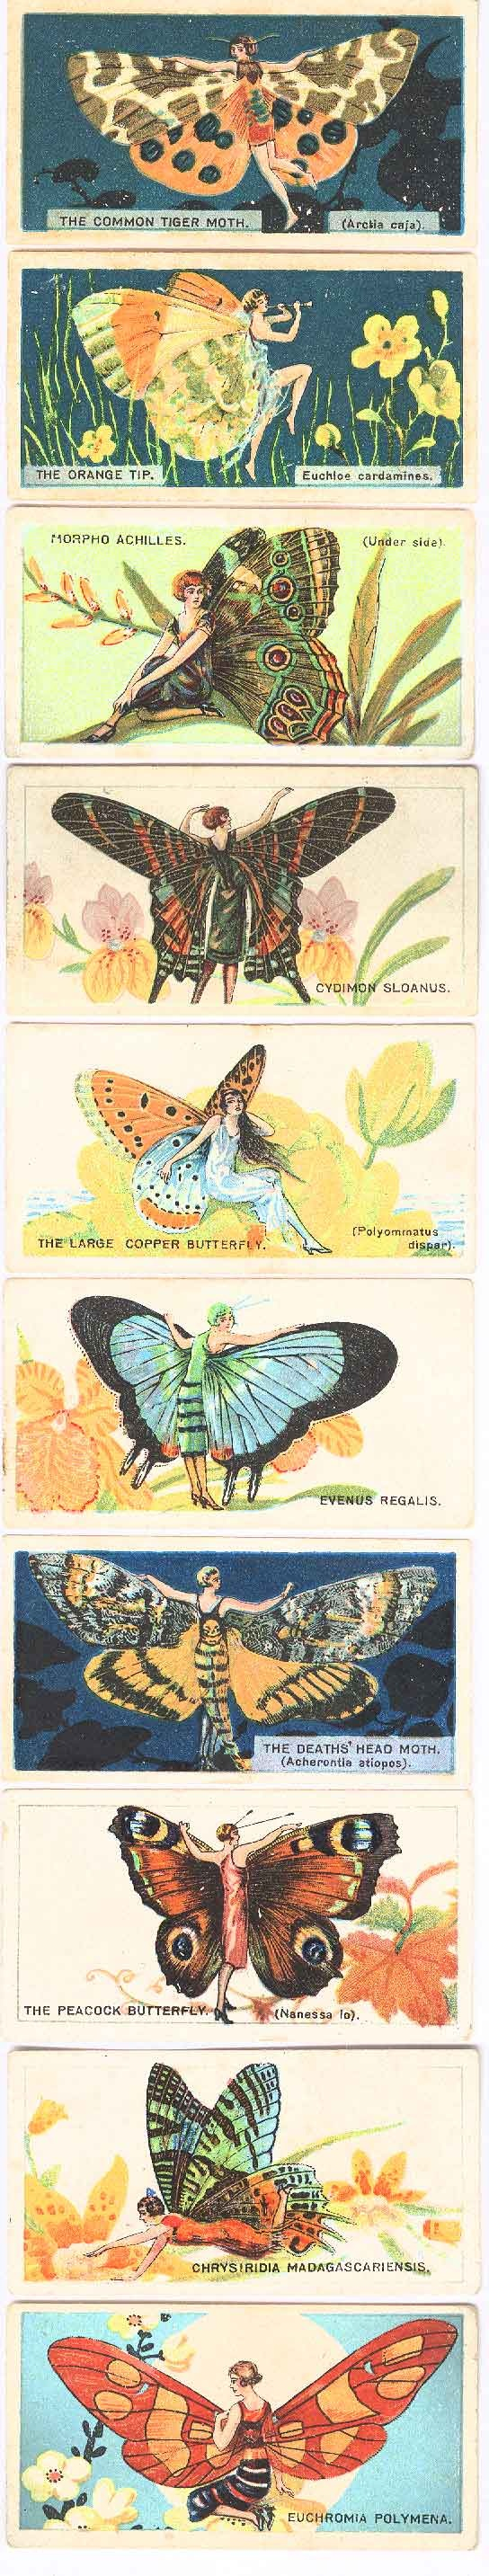 Players cigarette trading cards, c.1920